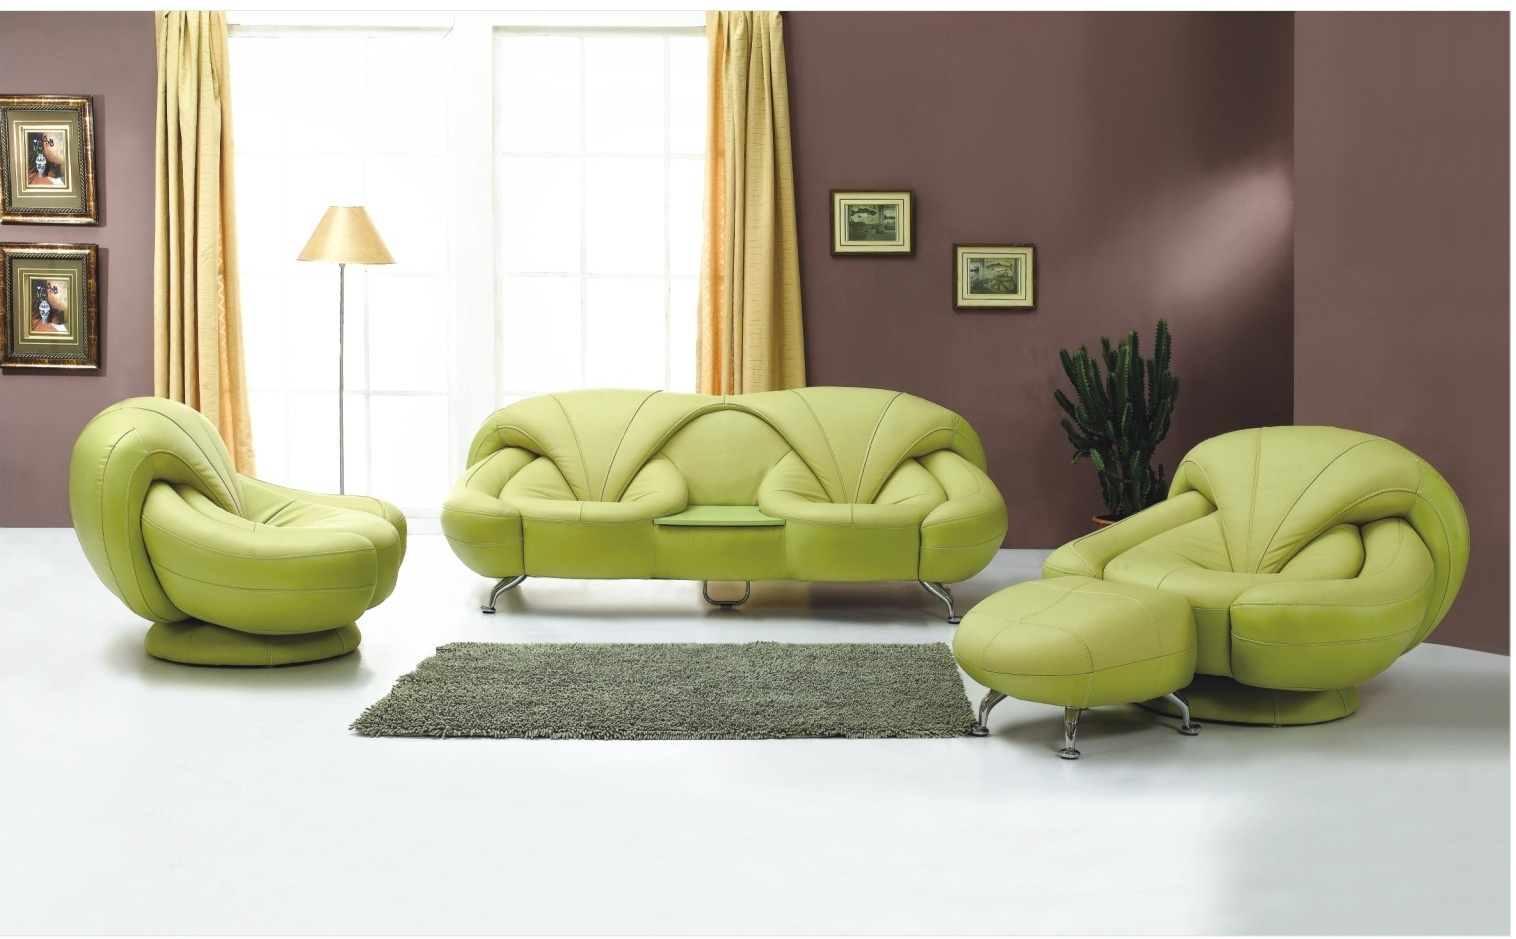 Living Room Couch Designs For Living Room living room furniture design modern ideas an interior design